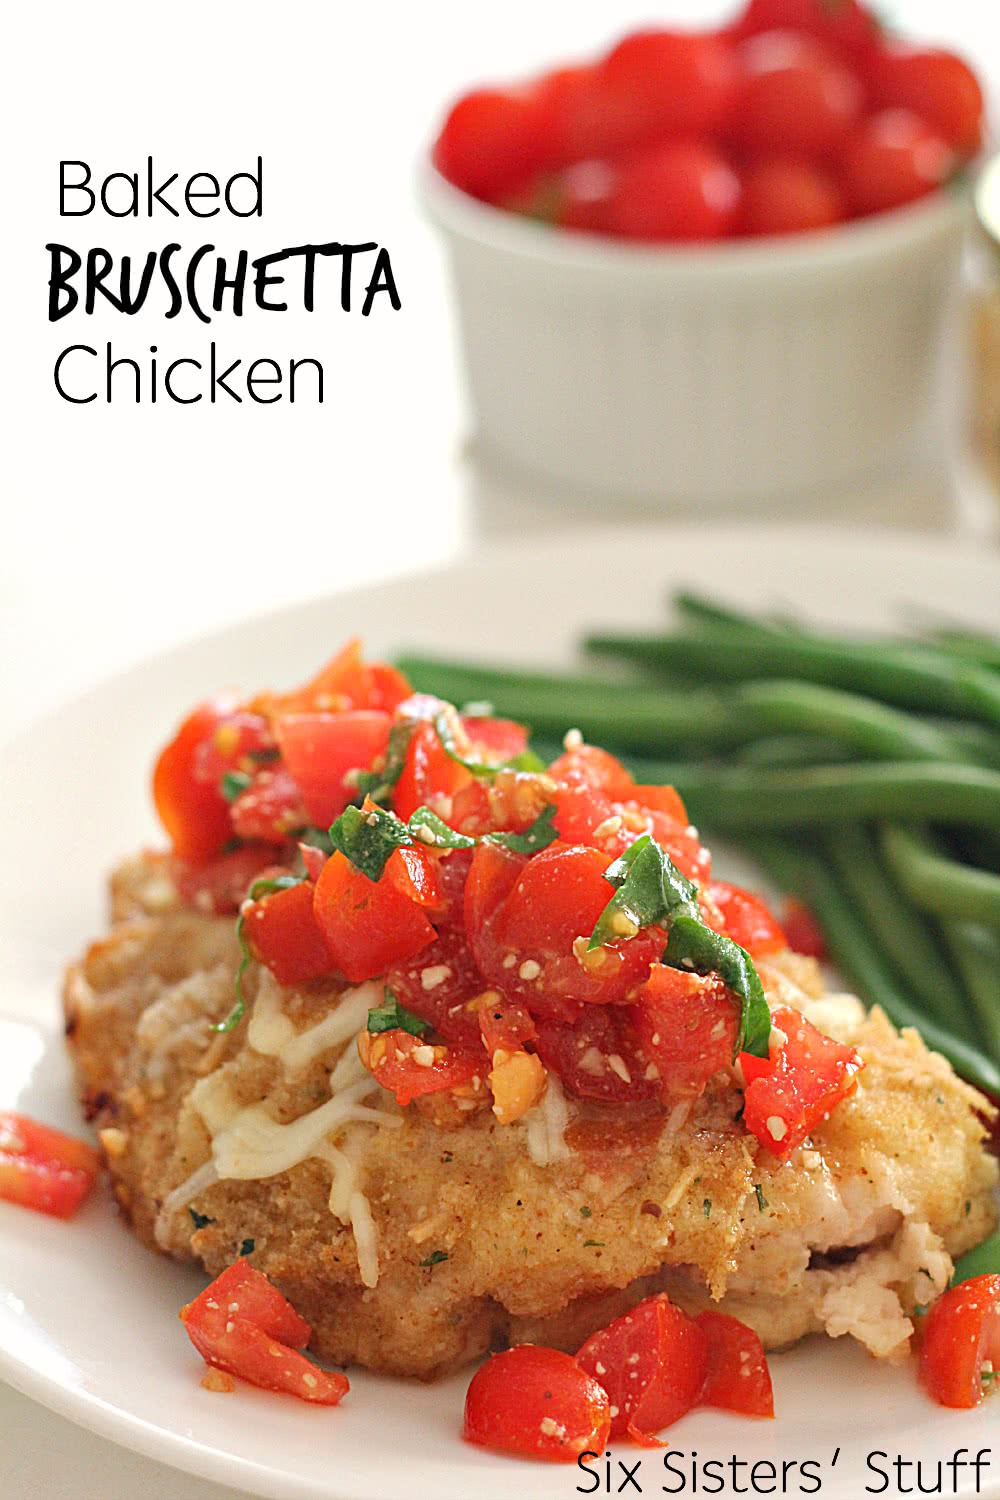 Baked Bruschetta Chicken Recipe SixSistersStuff